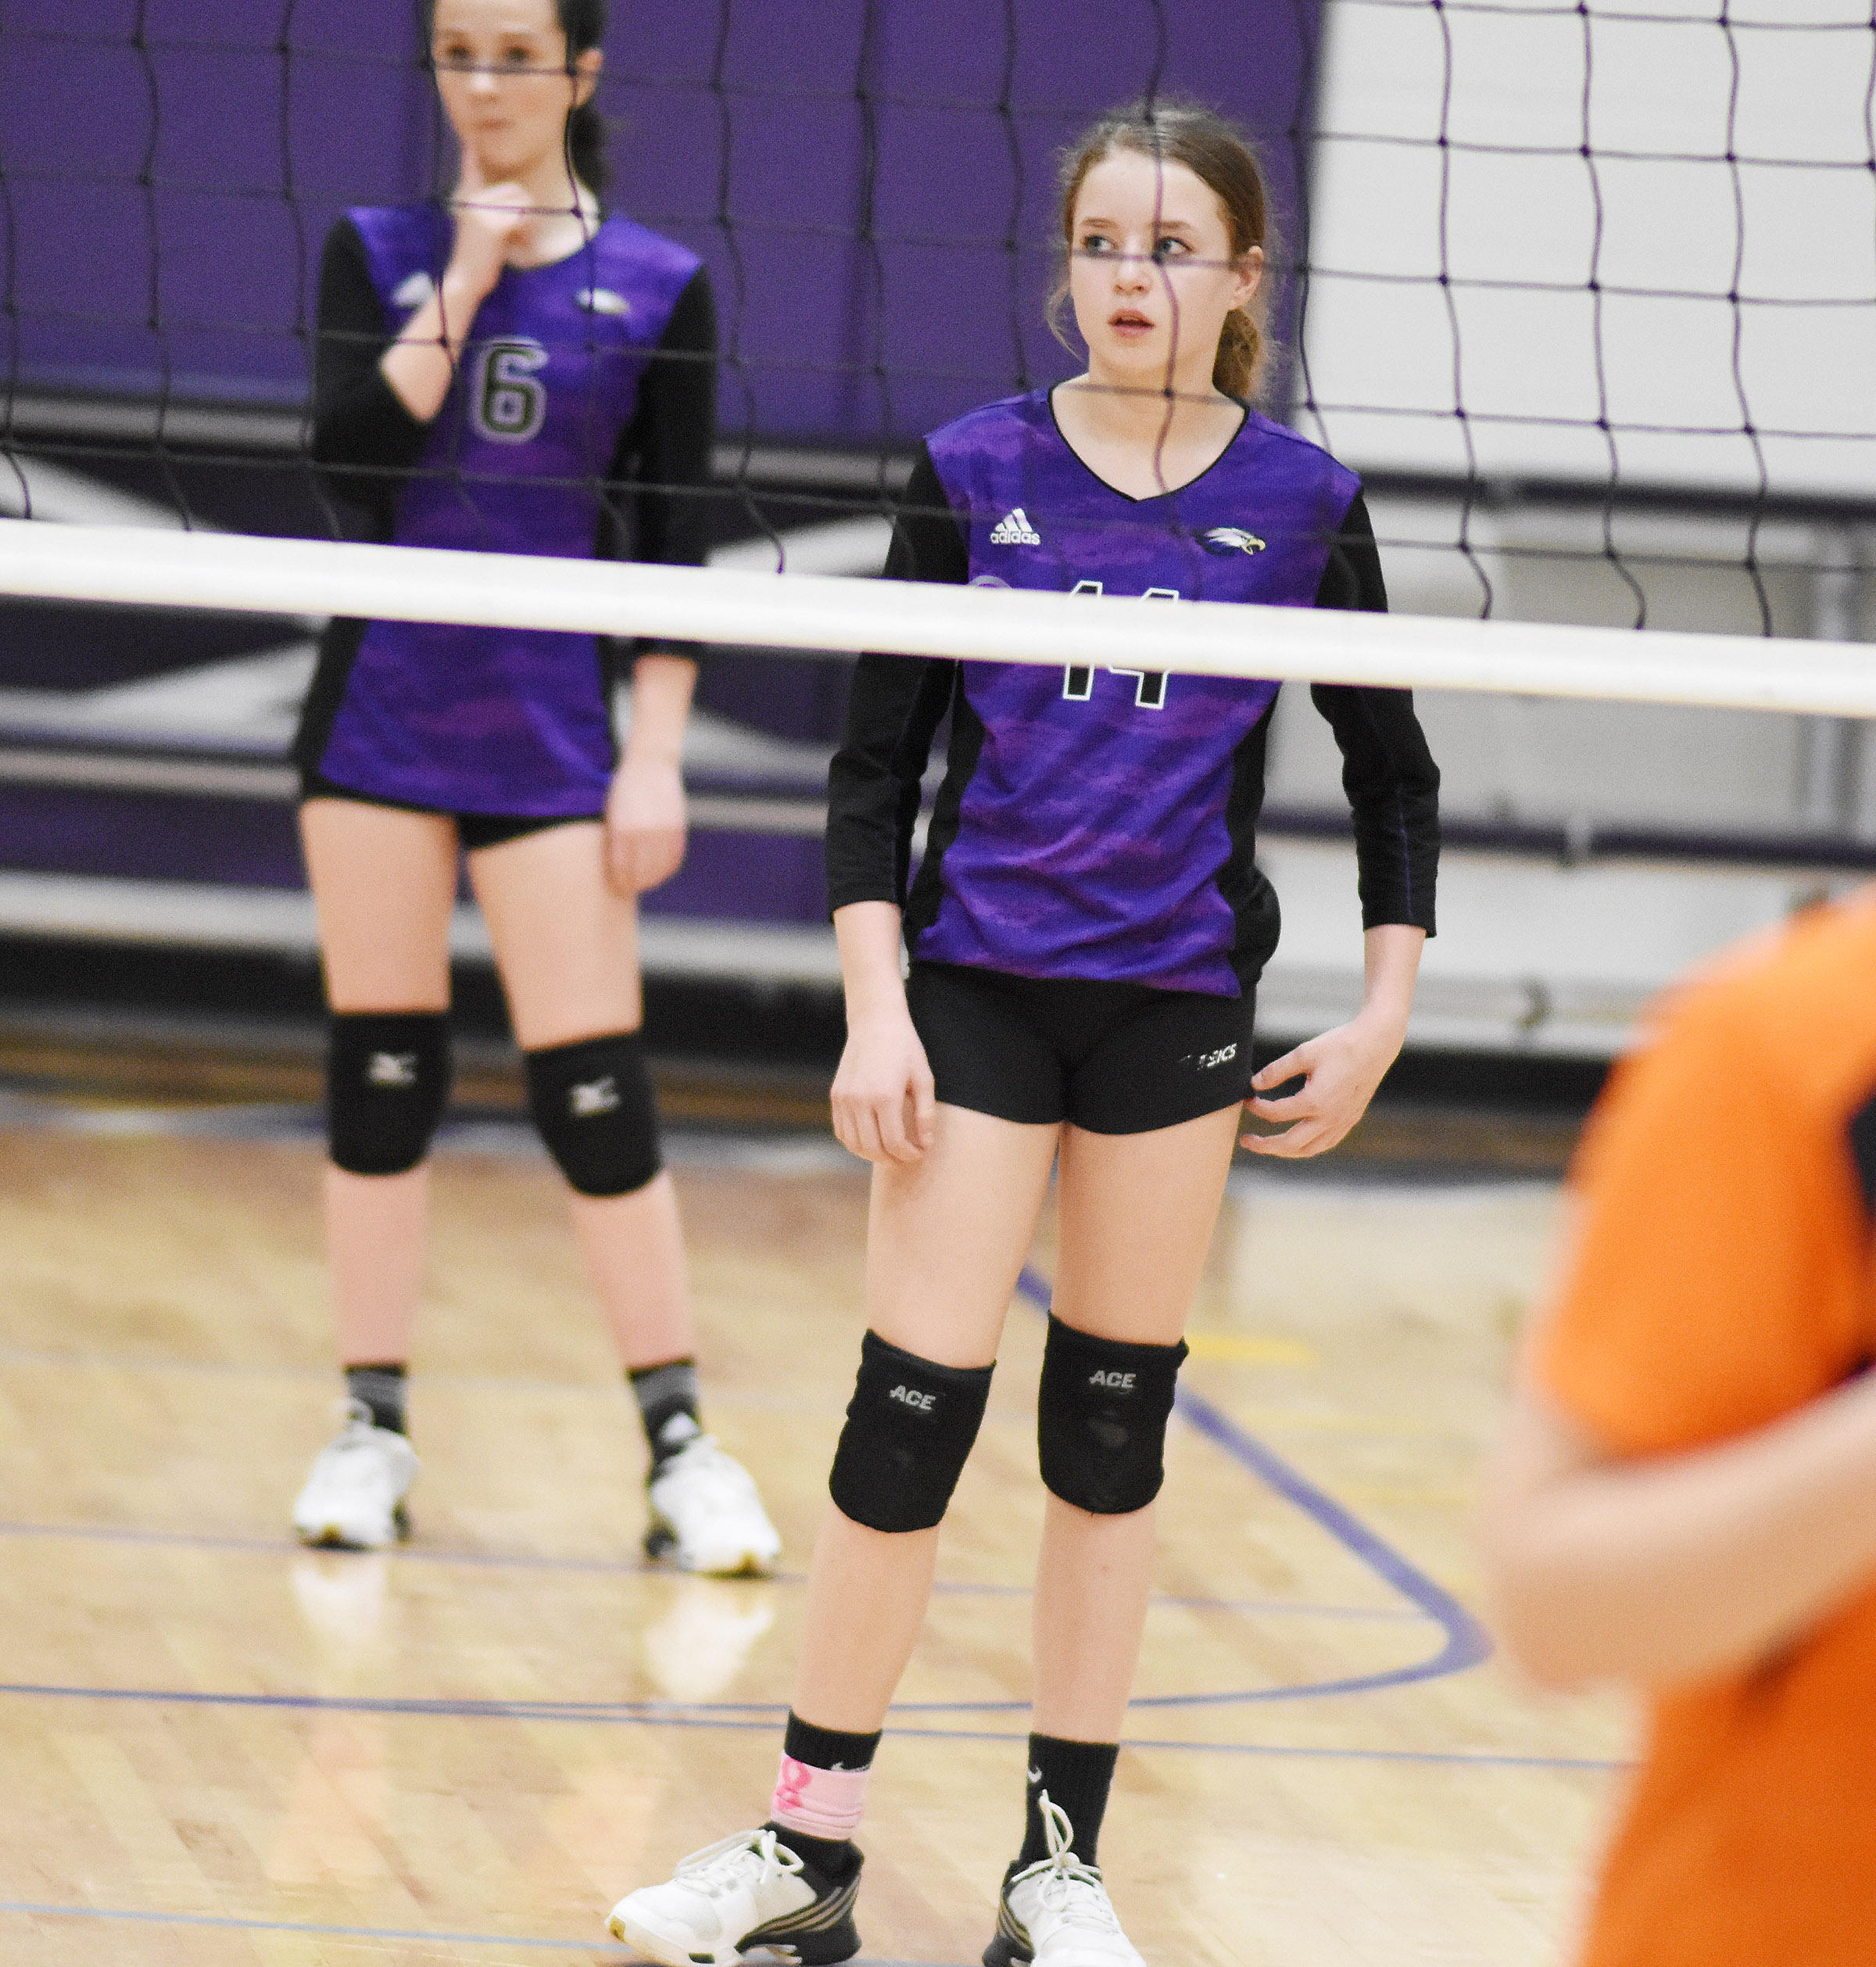 CMS eighth-grader Rylee Petett gets ready for the serve.